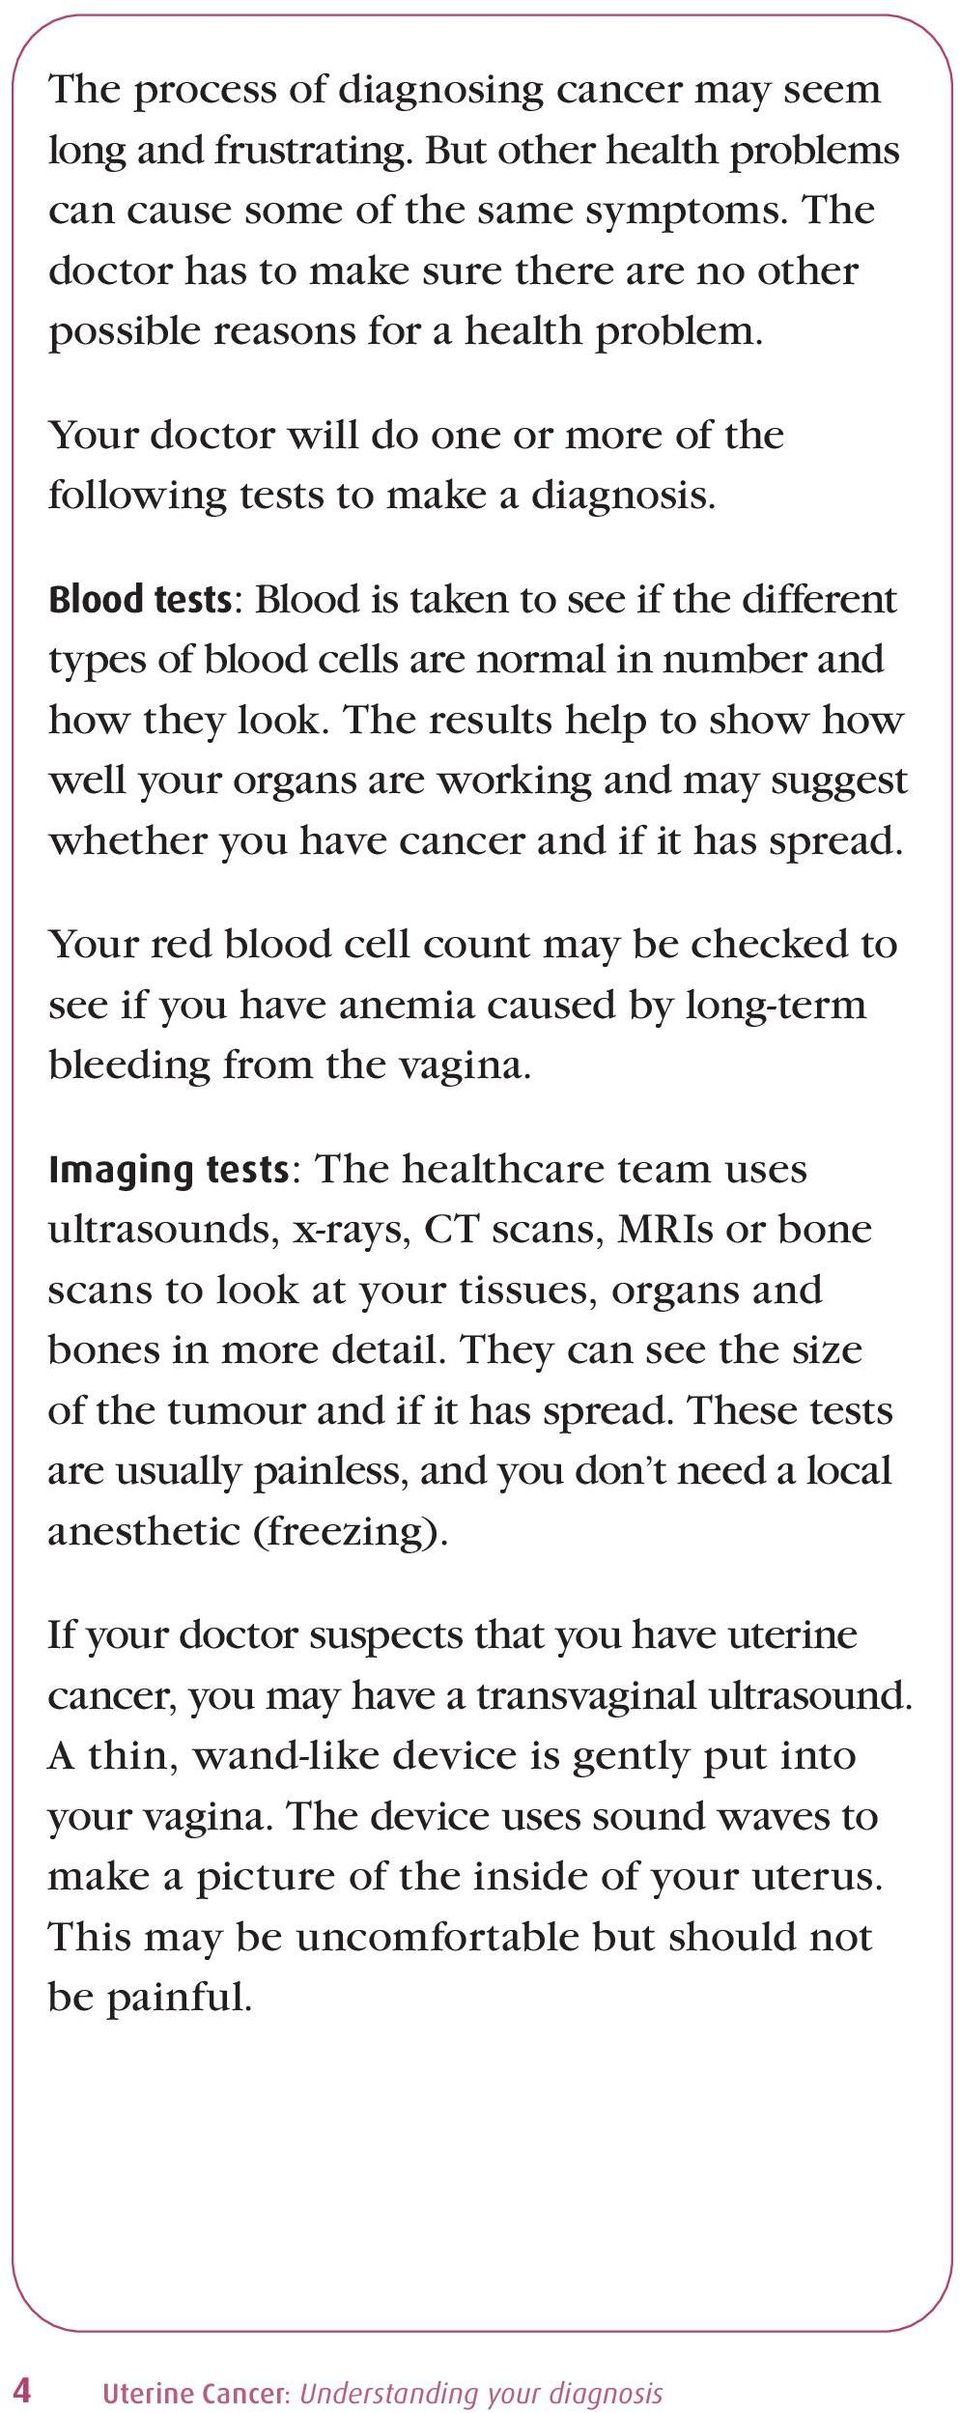 Blood tests: Blood is taken to see if the different types of blood cells are normal in number and how they look.